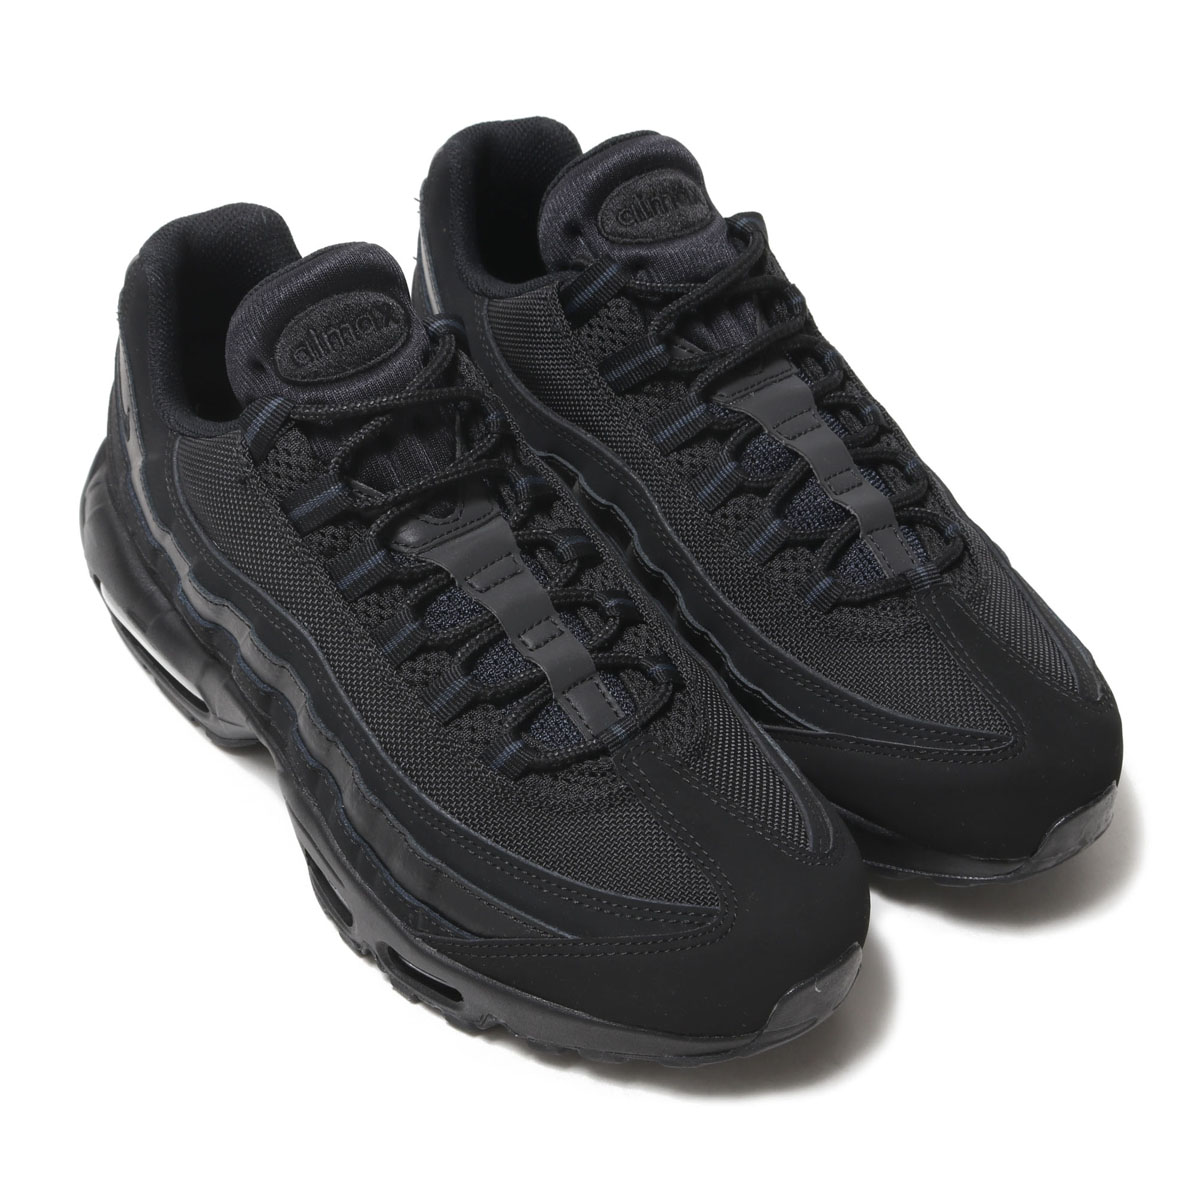 competitive price b1a74 2aec2  お取り寄せ商品  NIKE 2019SUMMER  NIKE AIR MAX  95(ナイキ